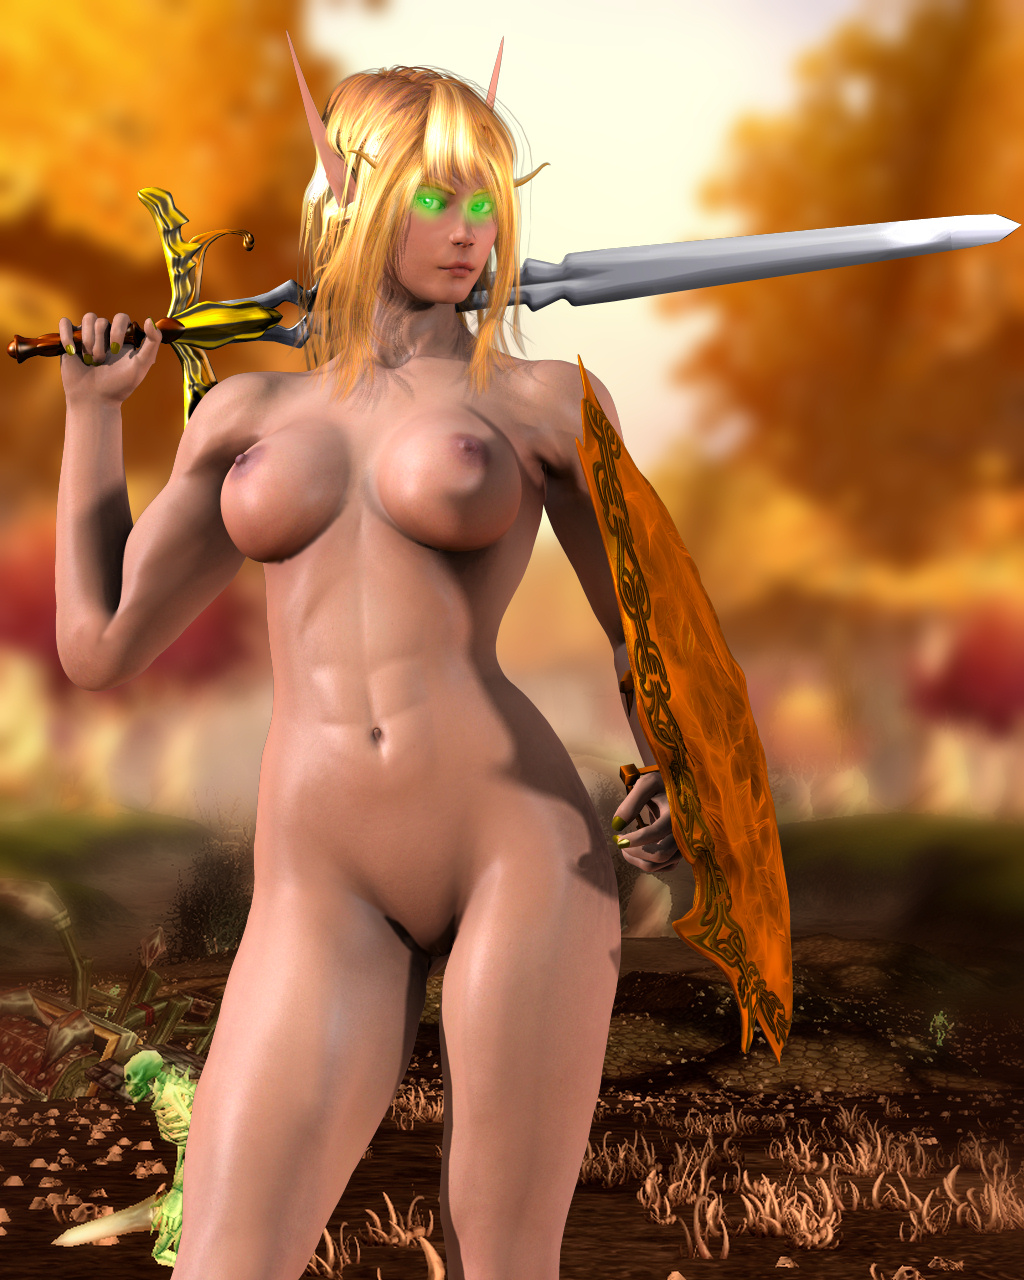 World of warcraft night elf female nude congratulate, the